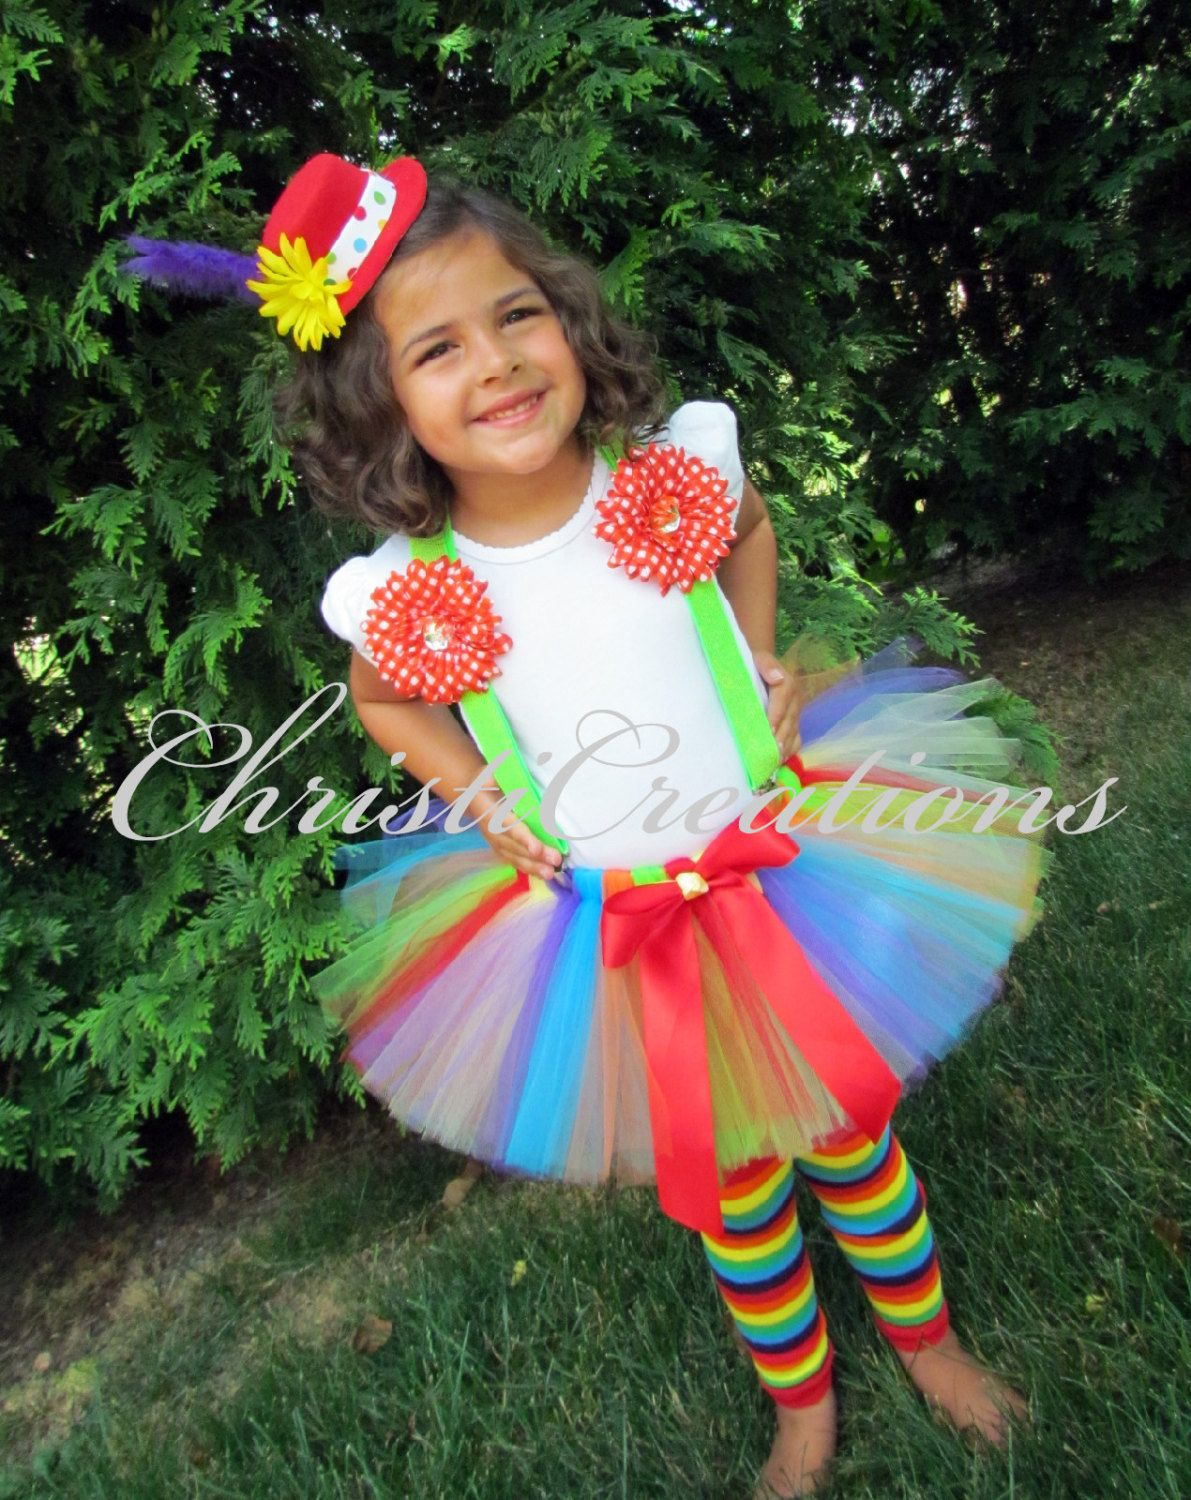 Mädchen-Clown - Halloween-Tutu - Trachtenhut, Tutu, Leggings und Stulpen von ChristiCreations auf Etsy https://www.etsy.com/de/listing/157091994/madchen-clown-halloween-tutu-trachtenhut